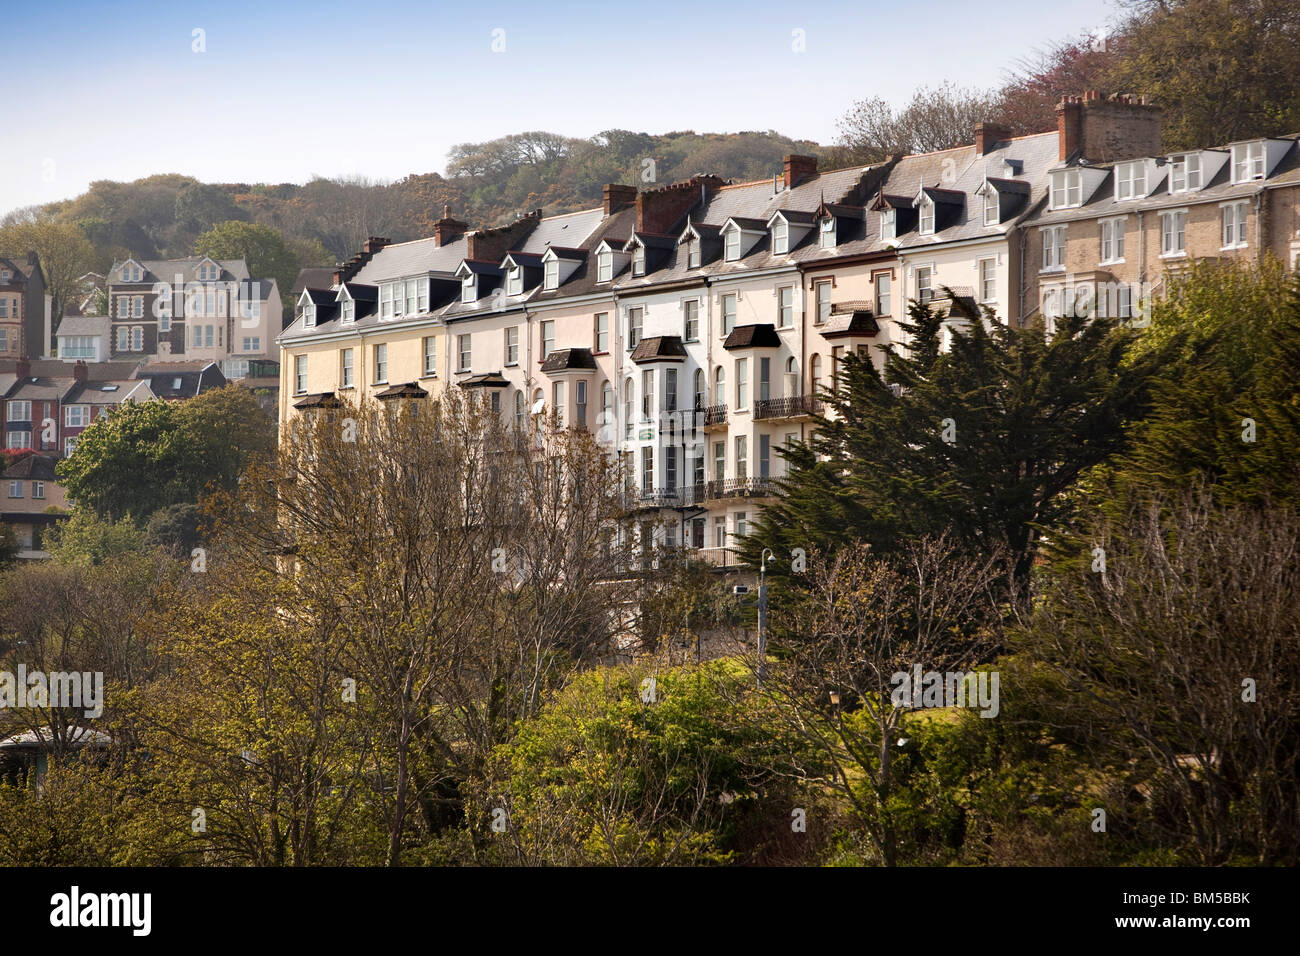 UK, England, Devon, Ilfracombe, tall houses overlooking the harbour - Stock Image